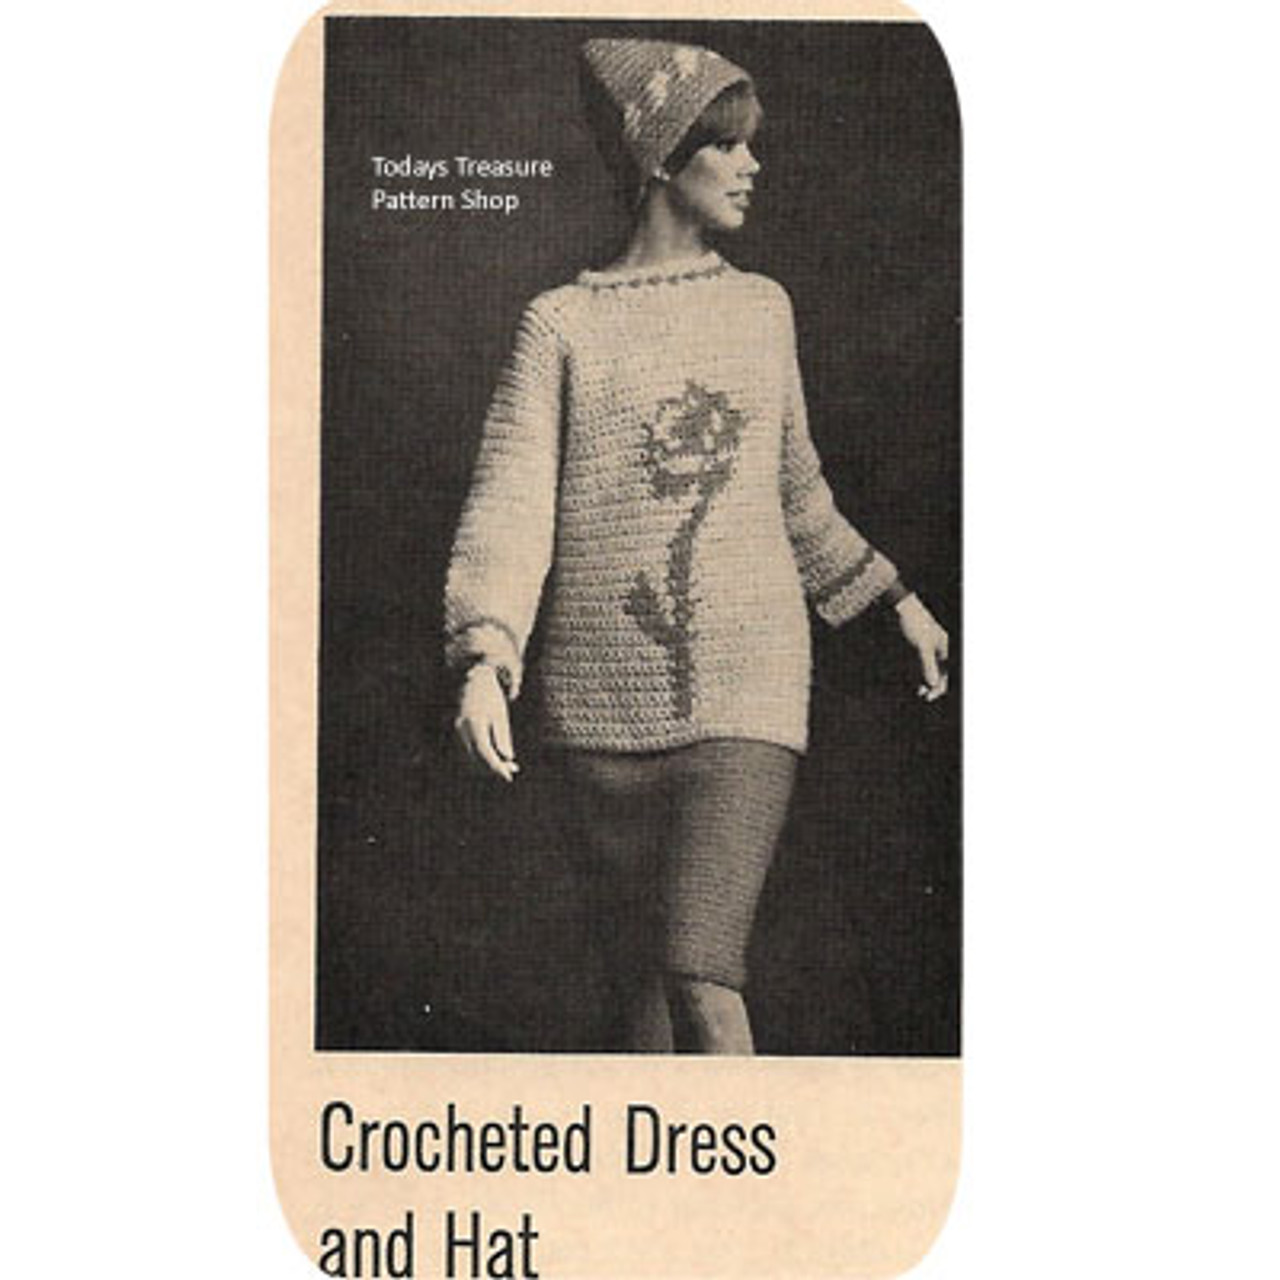 Vintage Crochet Tunic Pattern with Flower Embroidery